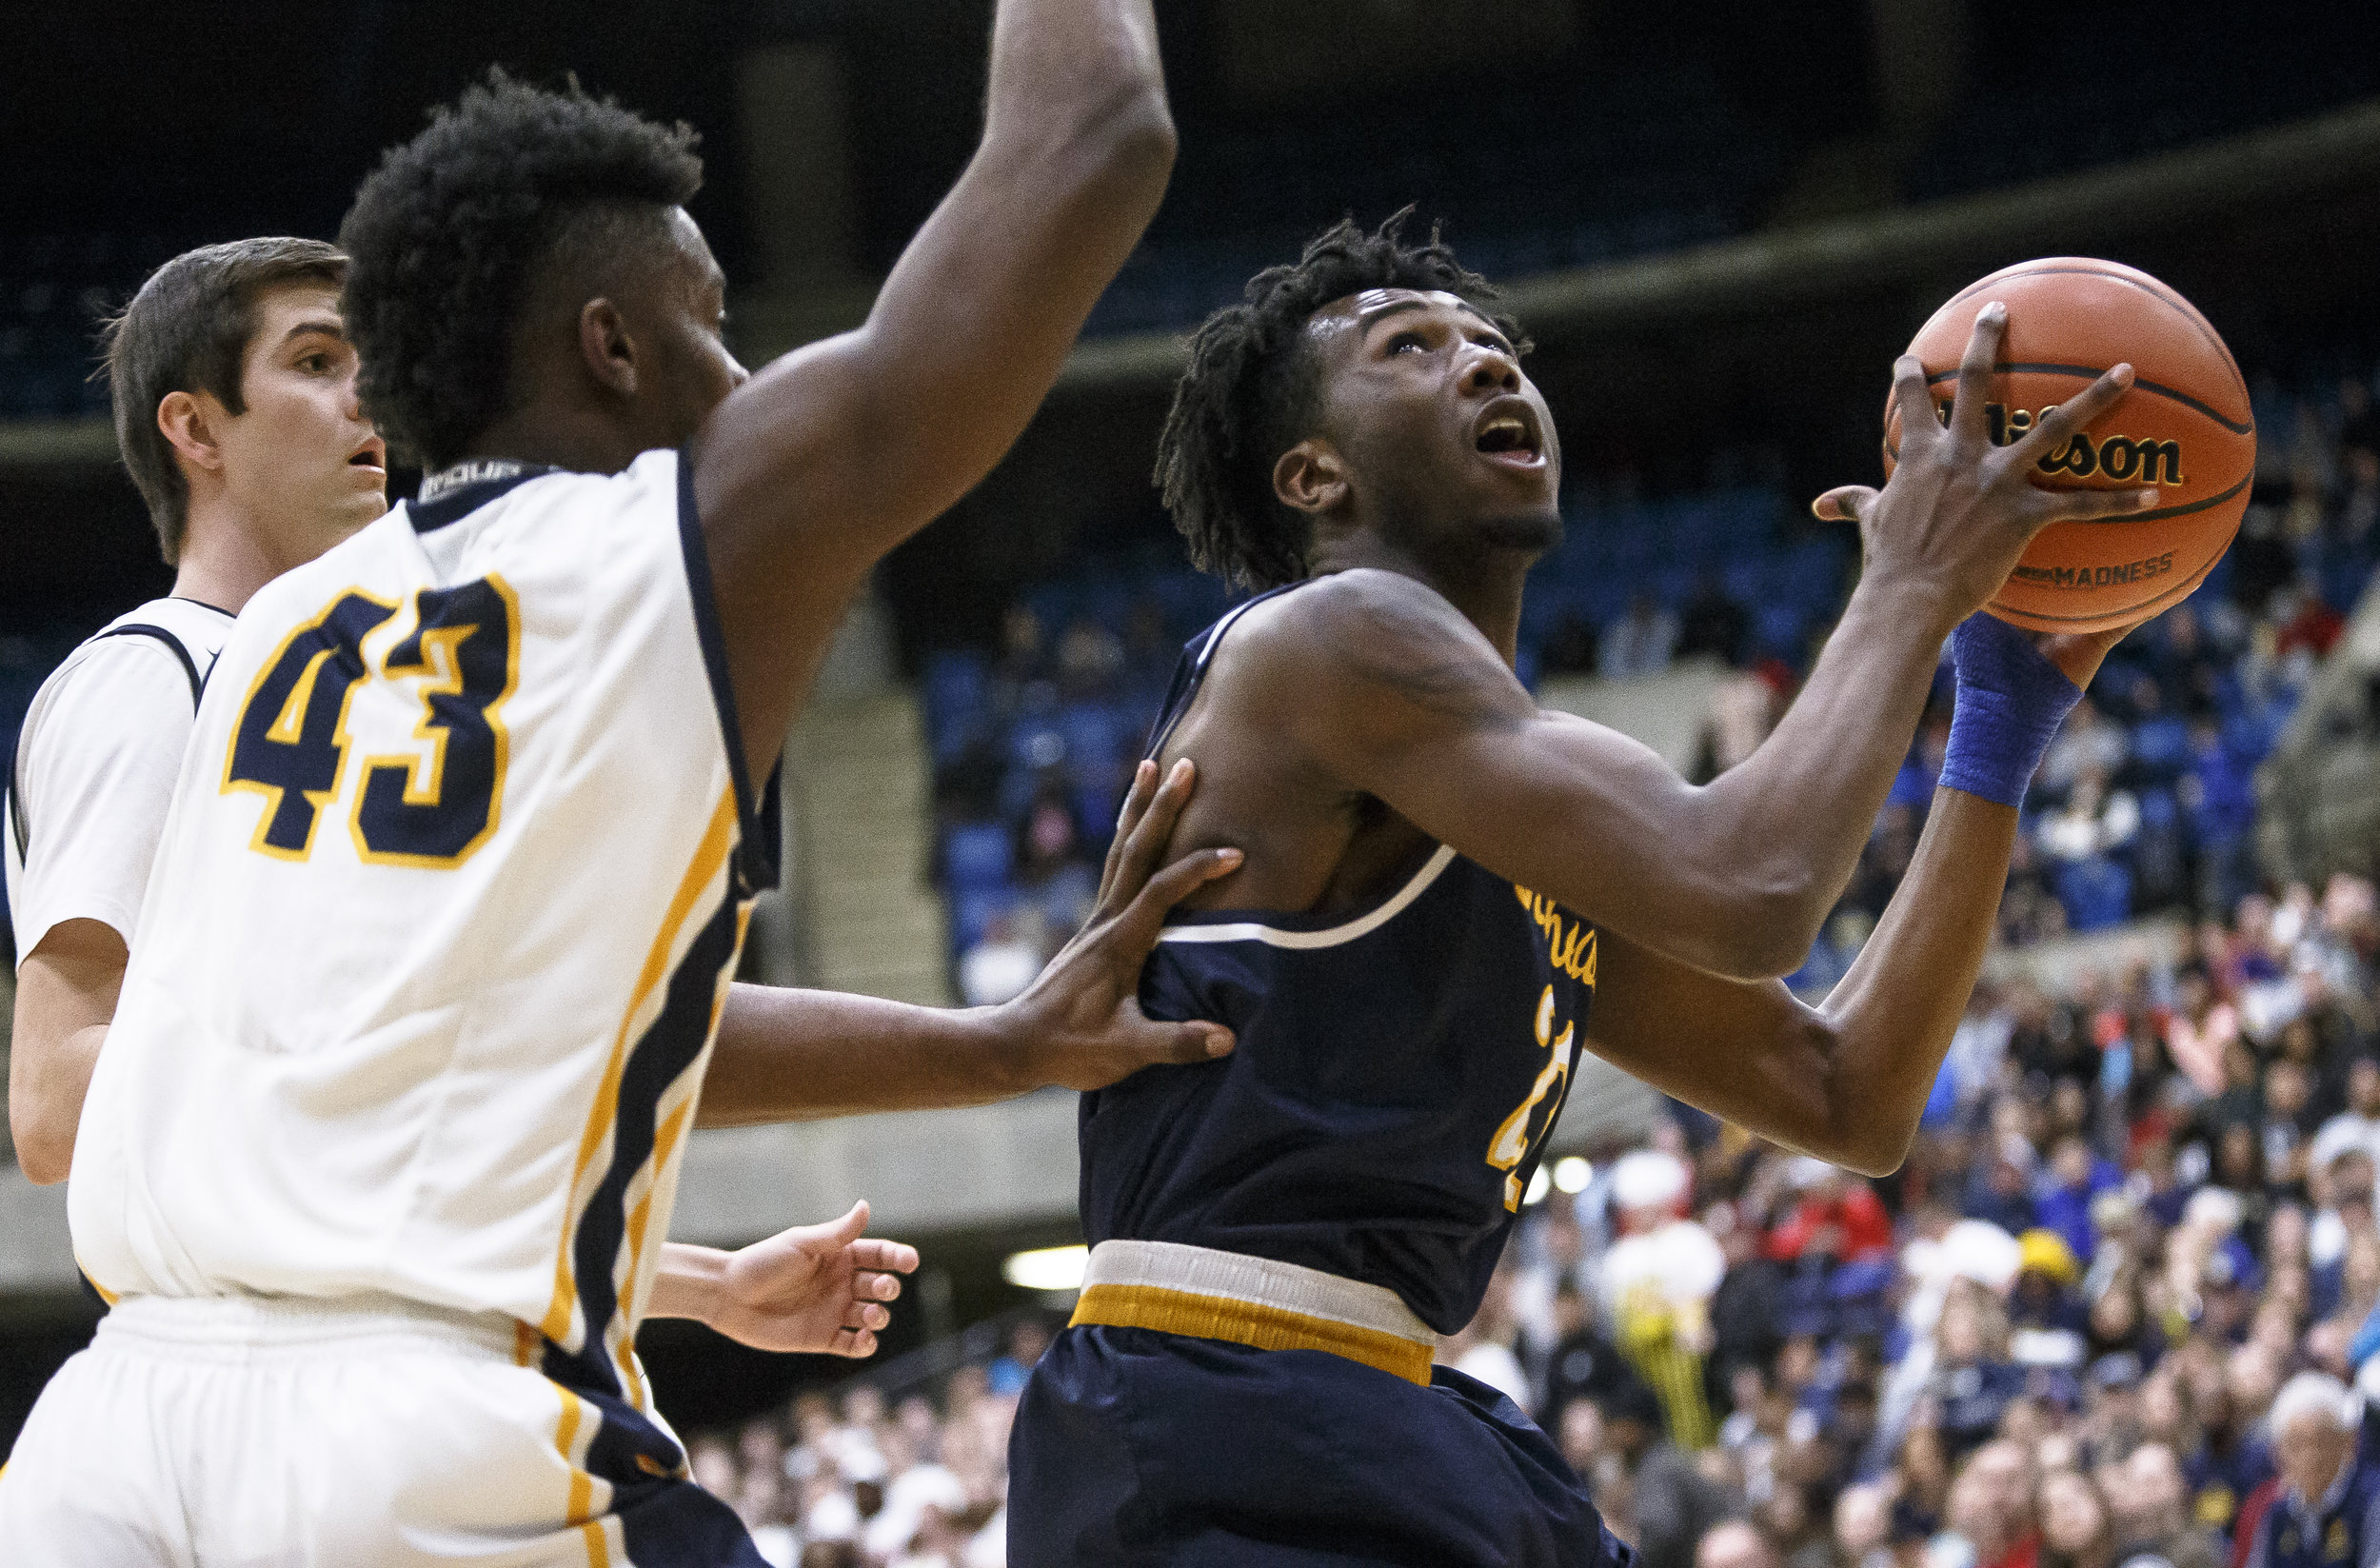 Southeast's Anthony Fairlee (21) goes up to the basket against Marion's Terrell Henderson (43) in the first half during the Class 3A Springfield Supersectional at the Bank of Springfield Center, Tuesday, March 13, 2018, in Springfield, Ill. [Justin L. Fowler/The State Journal-Register]